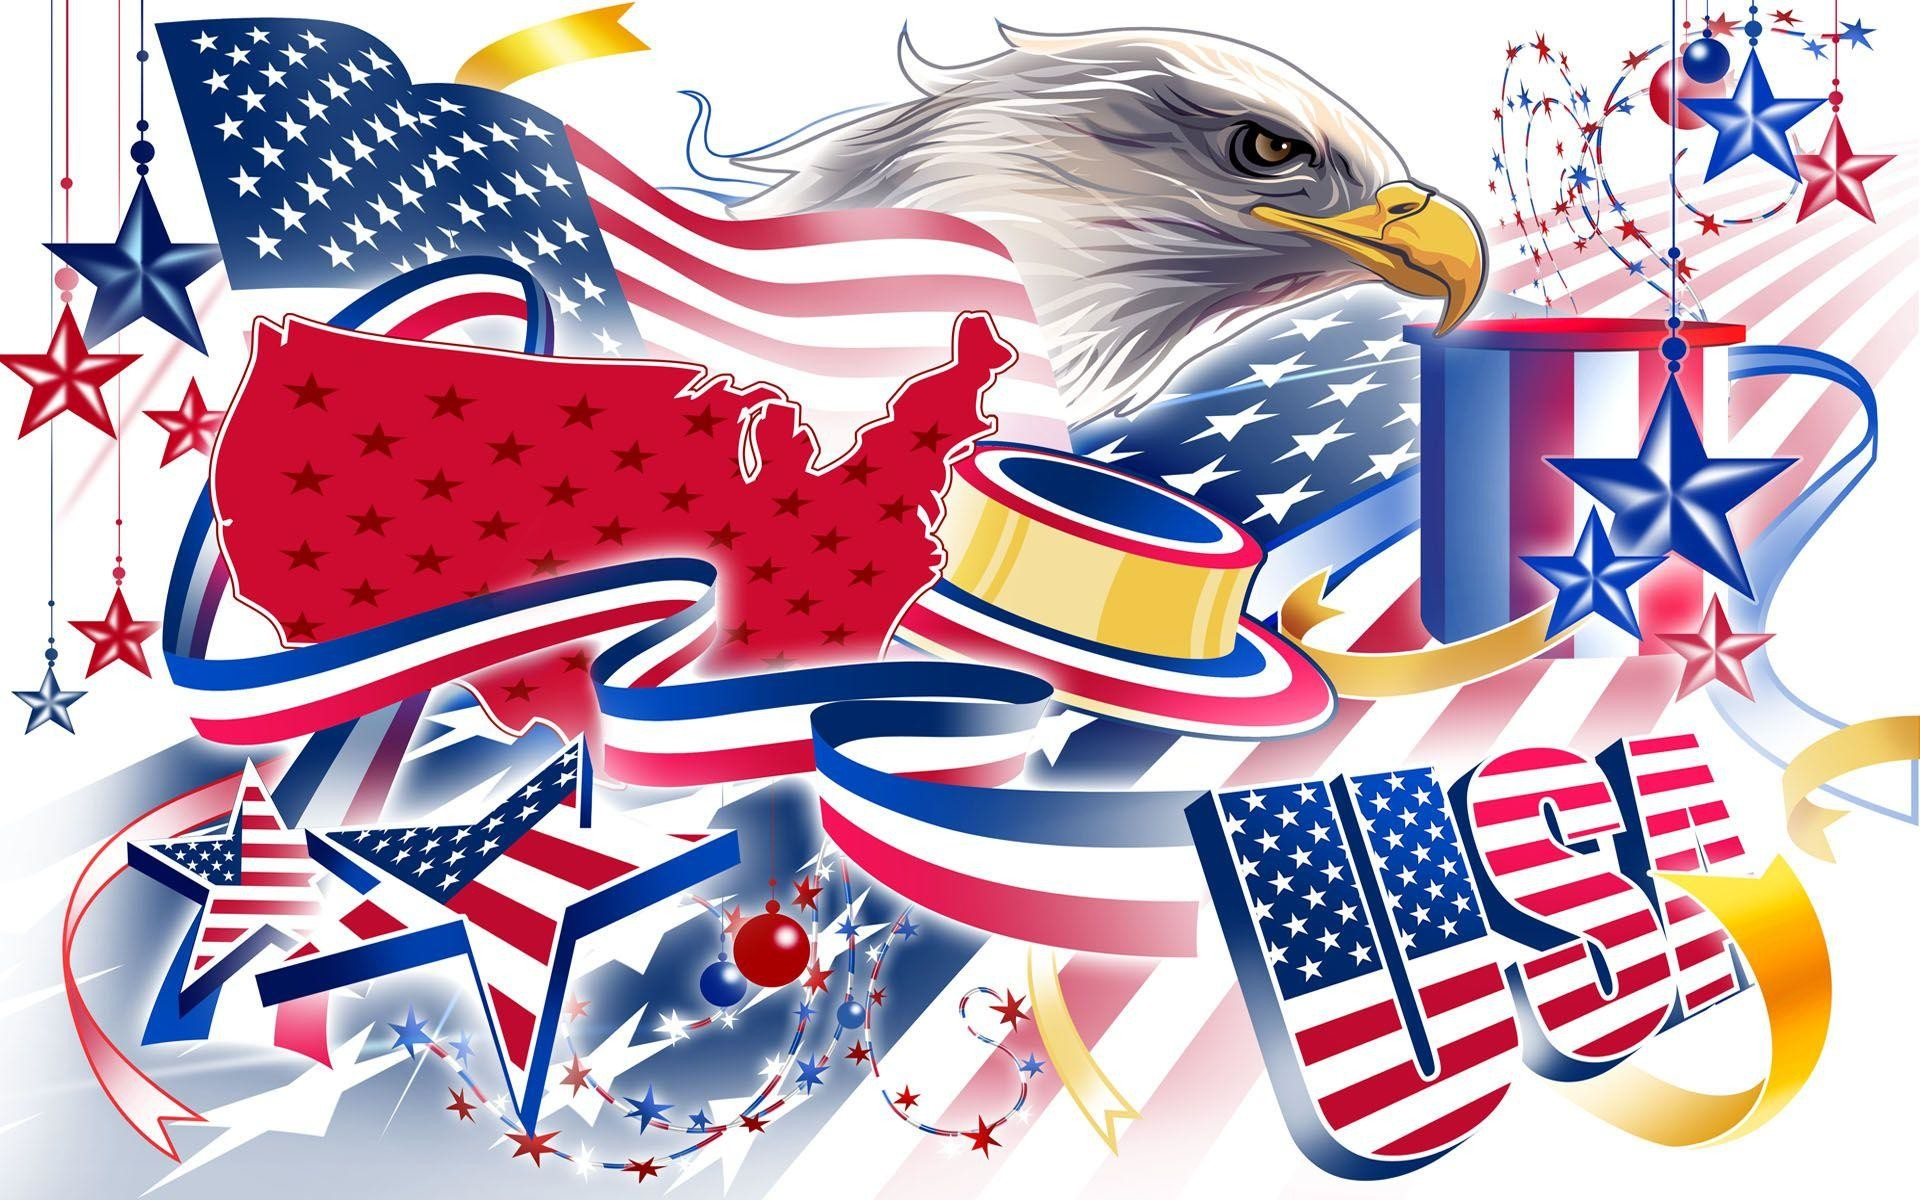 American Flag Day Eagle Wallpaper Wide or HD   Digital Art Wallpapers